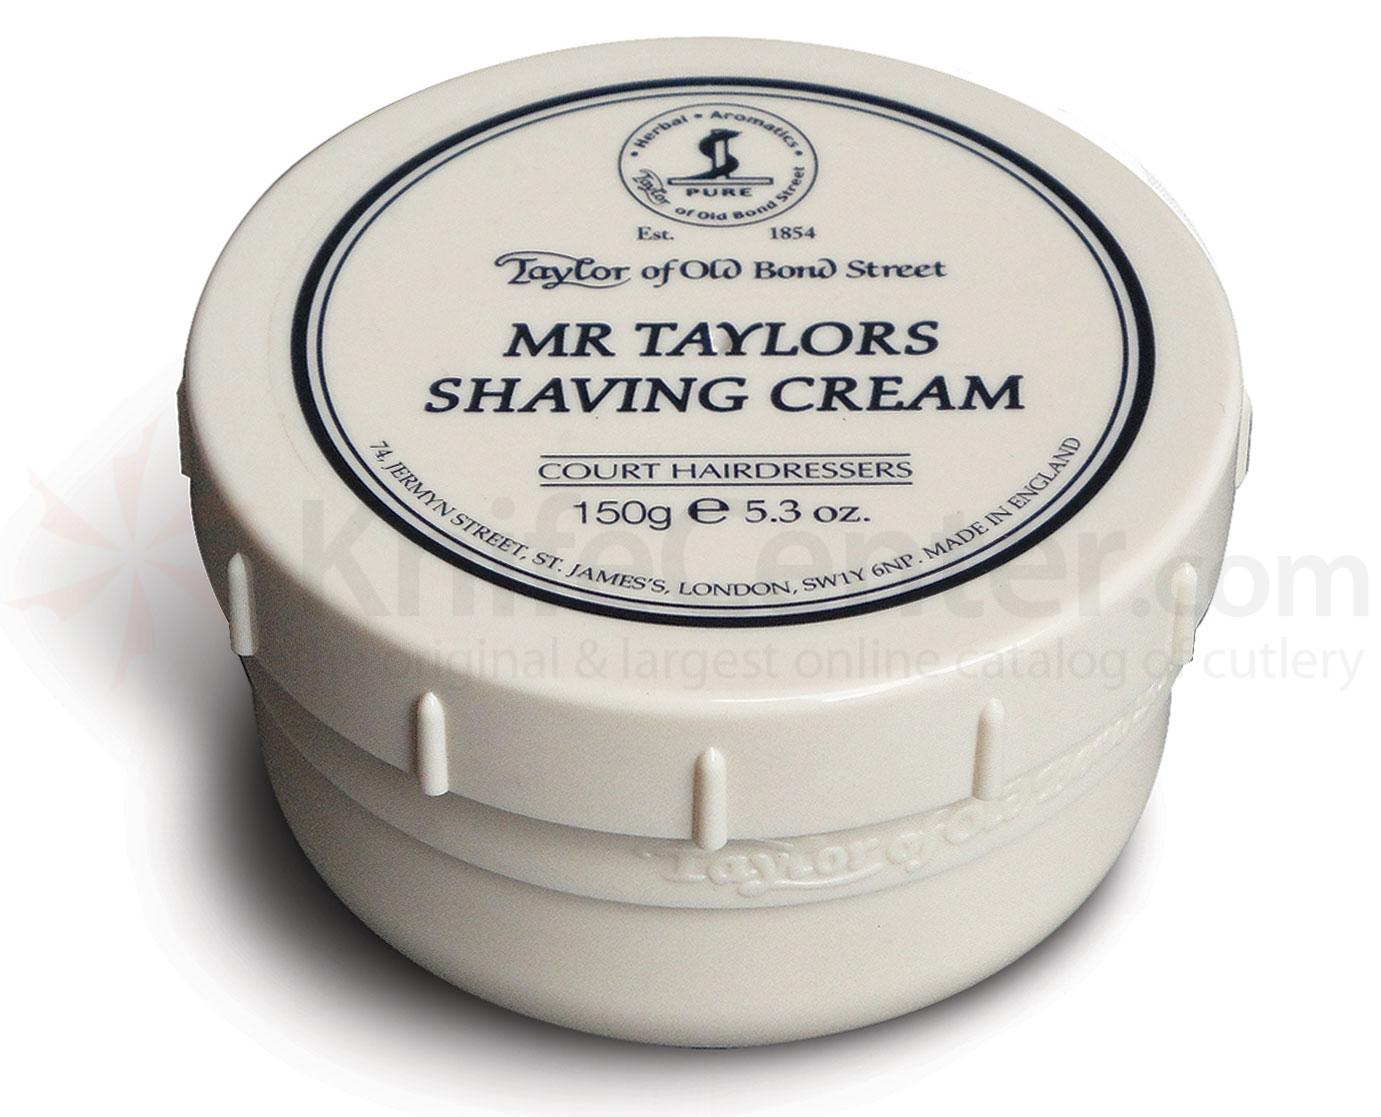 Taylor of Old Bond Street Mr Taylors Shaving Cream 5.3 oz (150g)